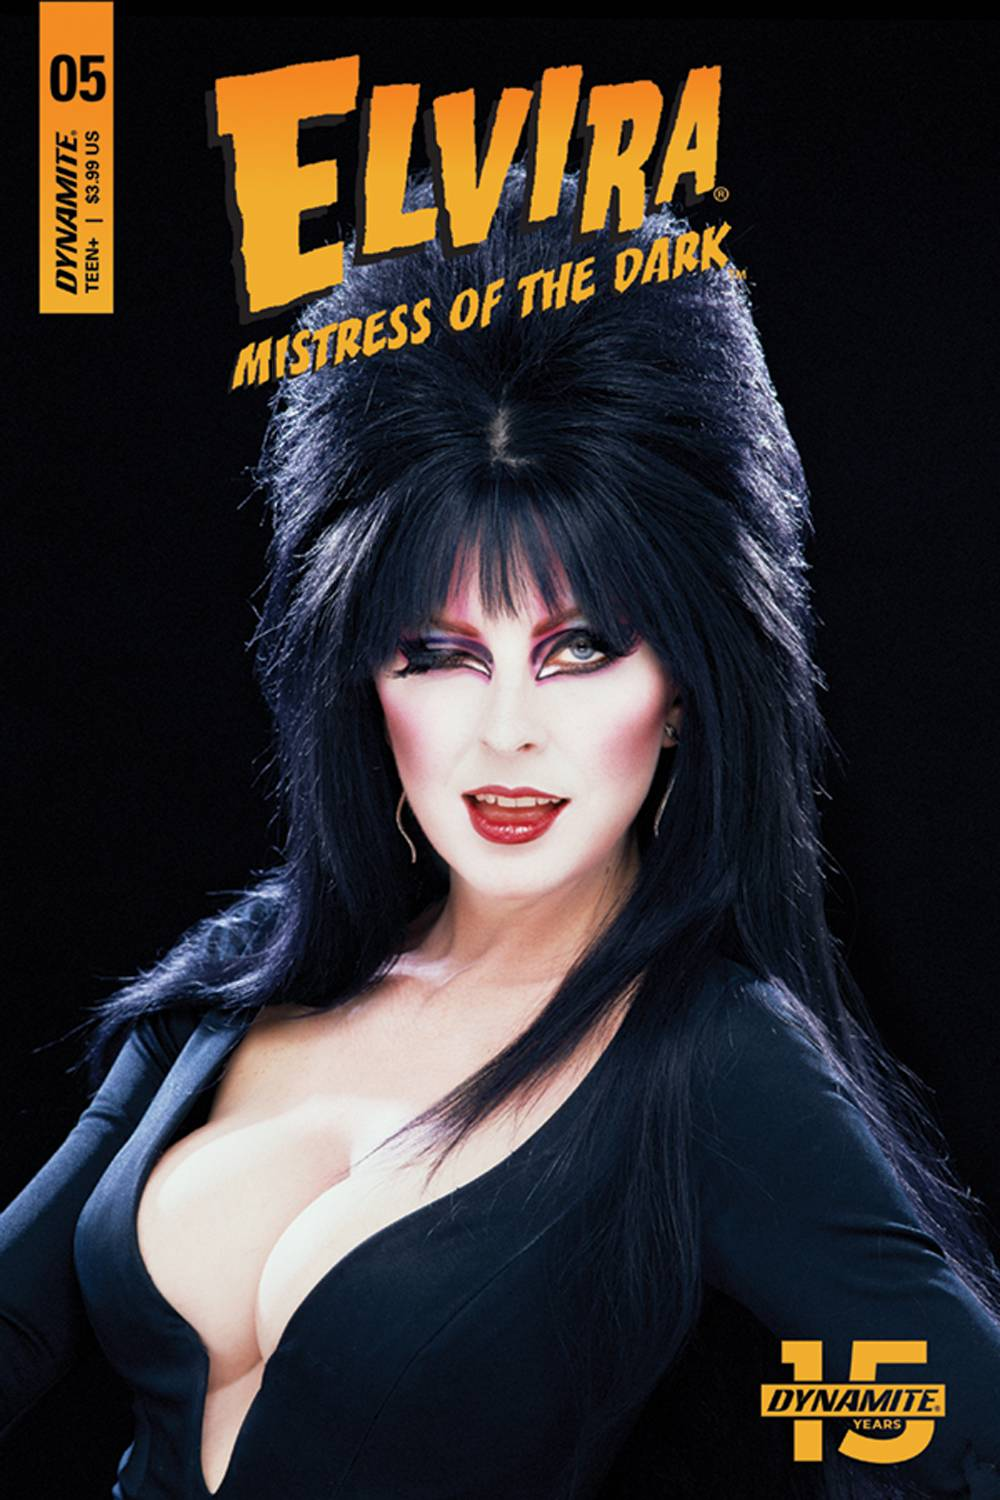 ELVIRA MISTRESS OF DARK 5 CVR D PHOTO SUB VAR.jpg